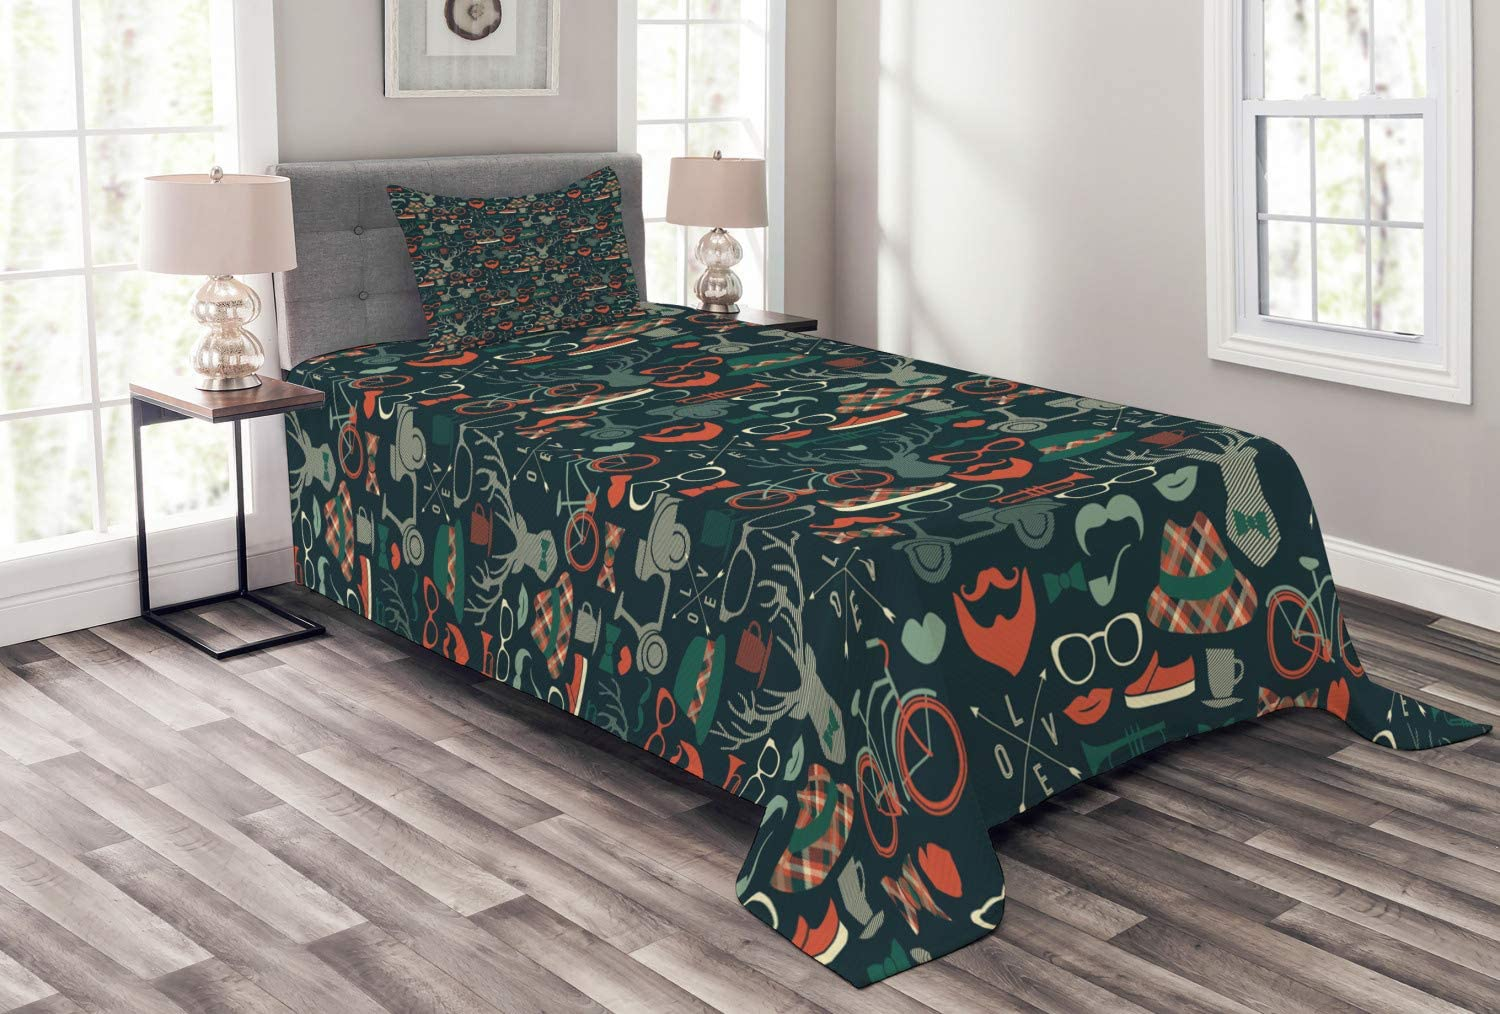 Ambesonne Detroit Mall free Hipster Bedspread Caribou Reindeer Antlers Plaid Hat